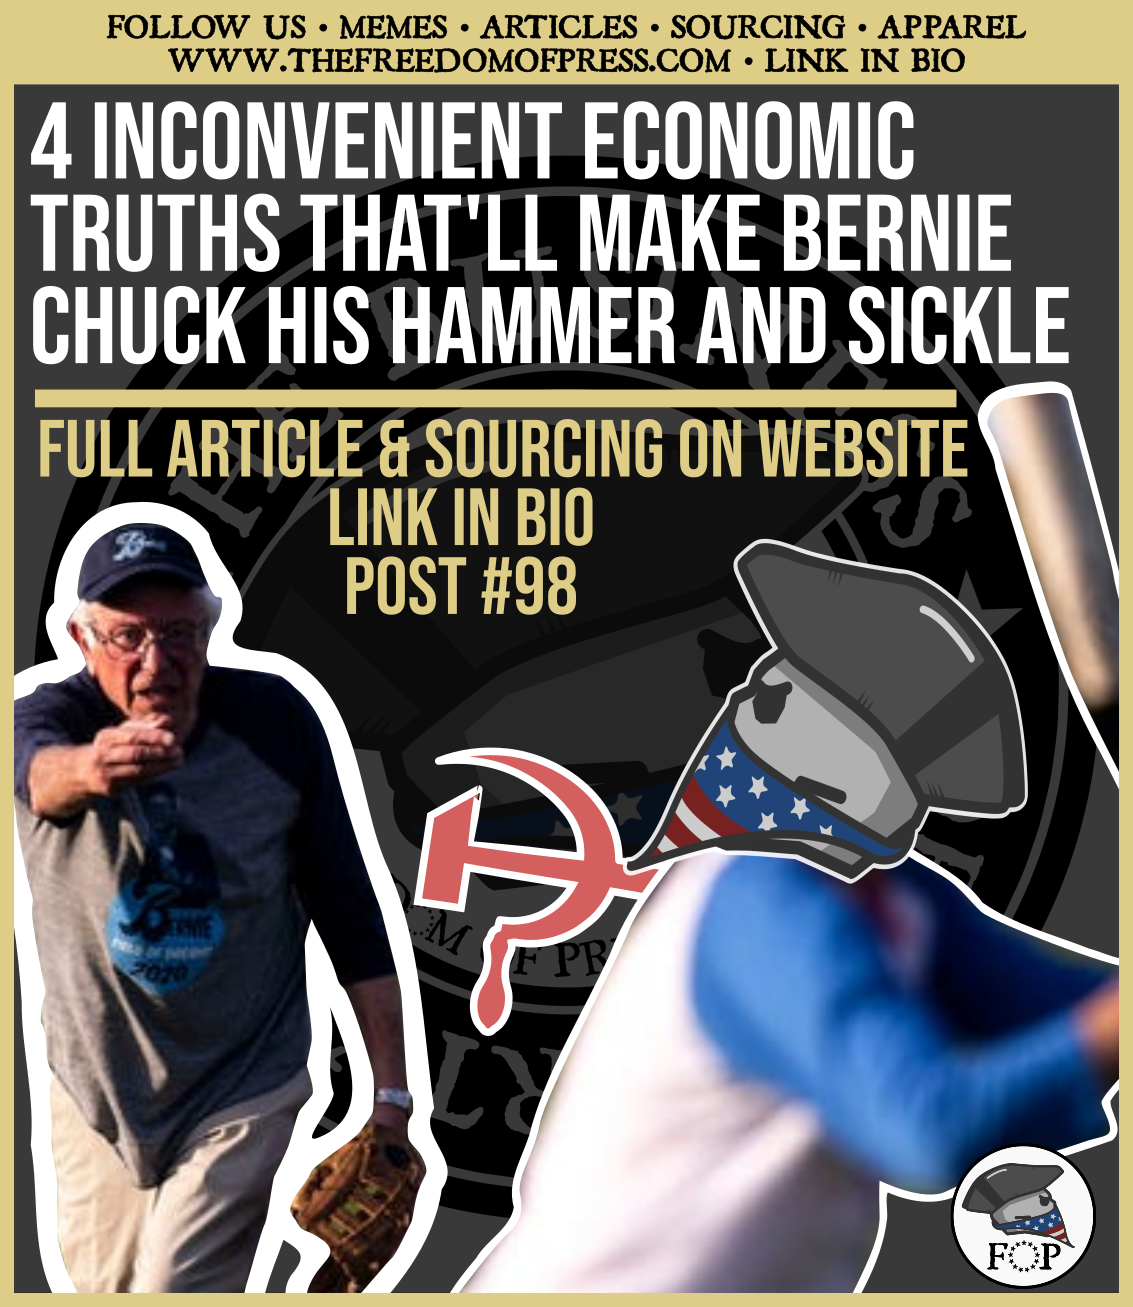 4 INCONVENIENT ECONOMIC TRUTHS THAT'LL MAKE BERNIE CHUCK HIS HAMMER AND SICKLE (#98)